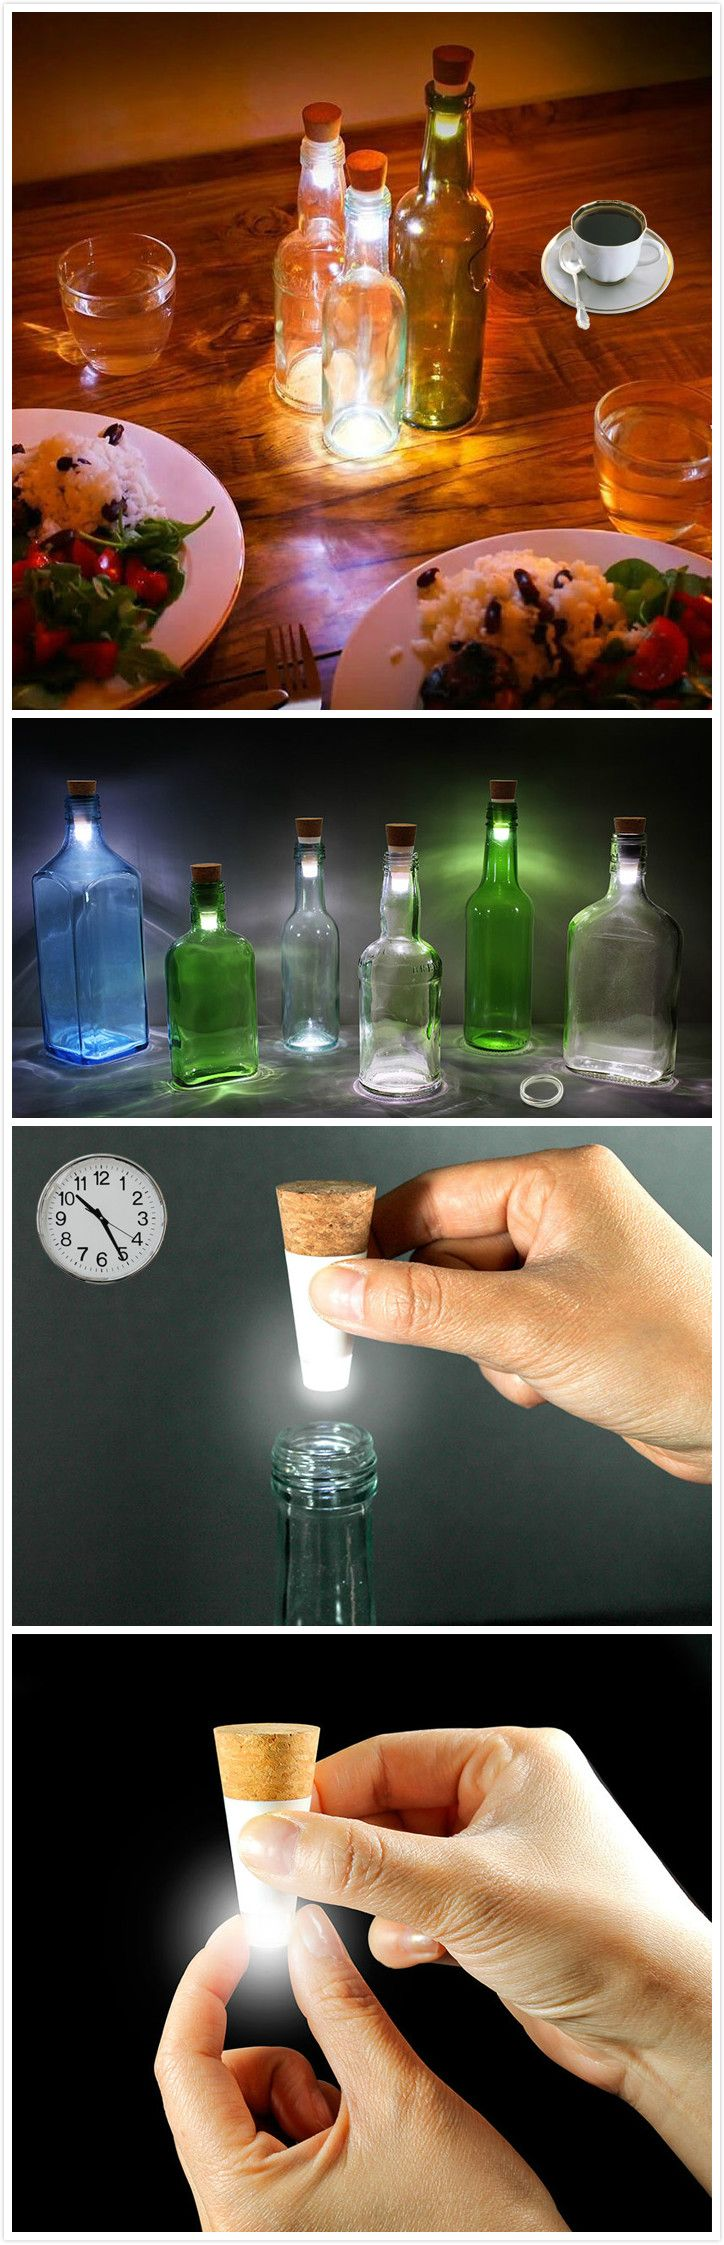 Cork Shaped Rechargeable USB LED Night Light Empty Wine Bottle Lamp.#gadgets #light